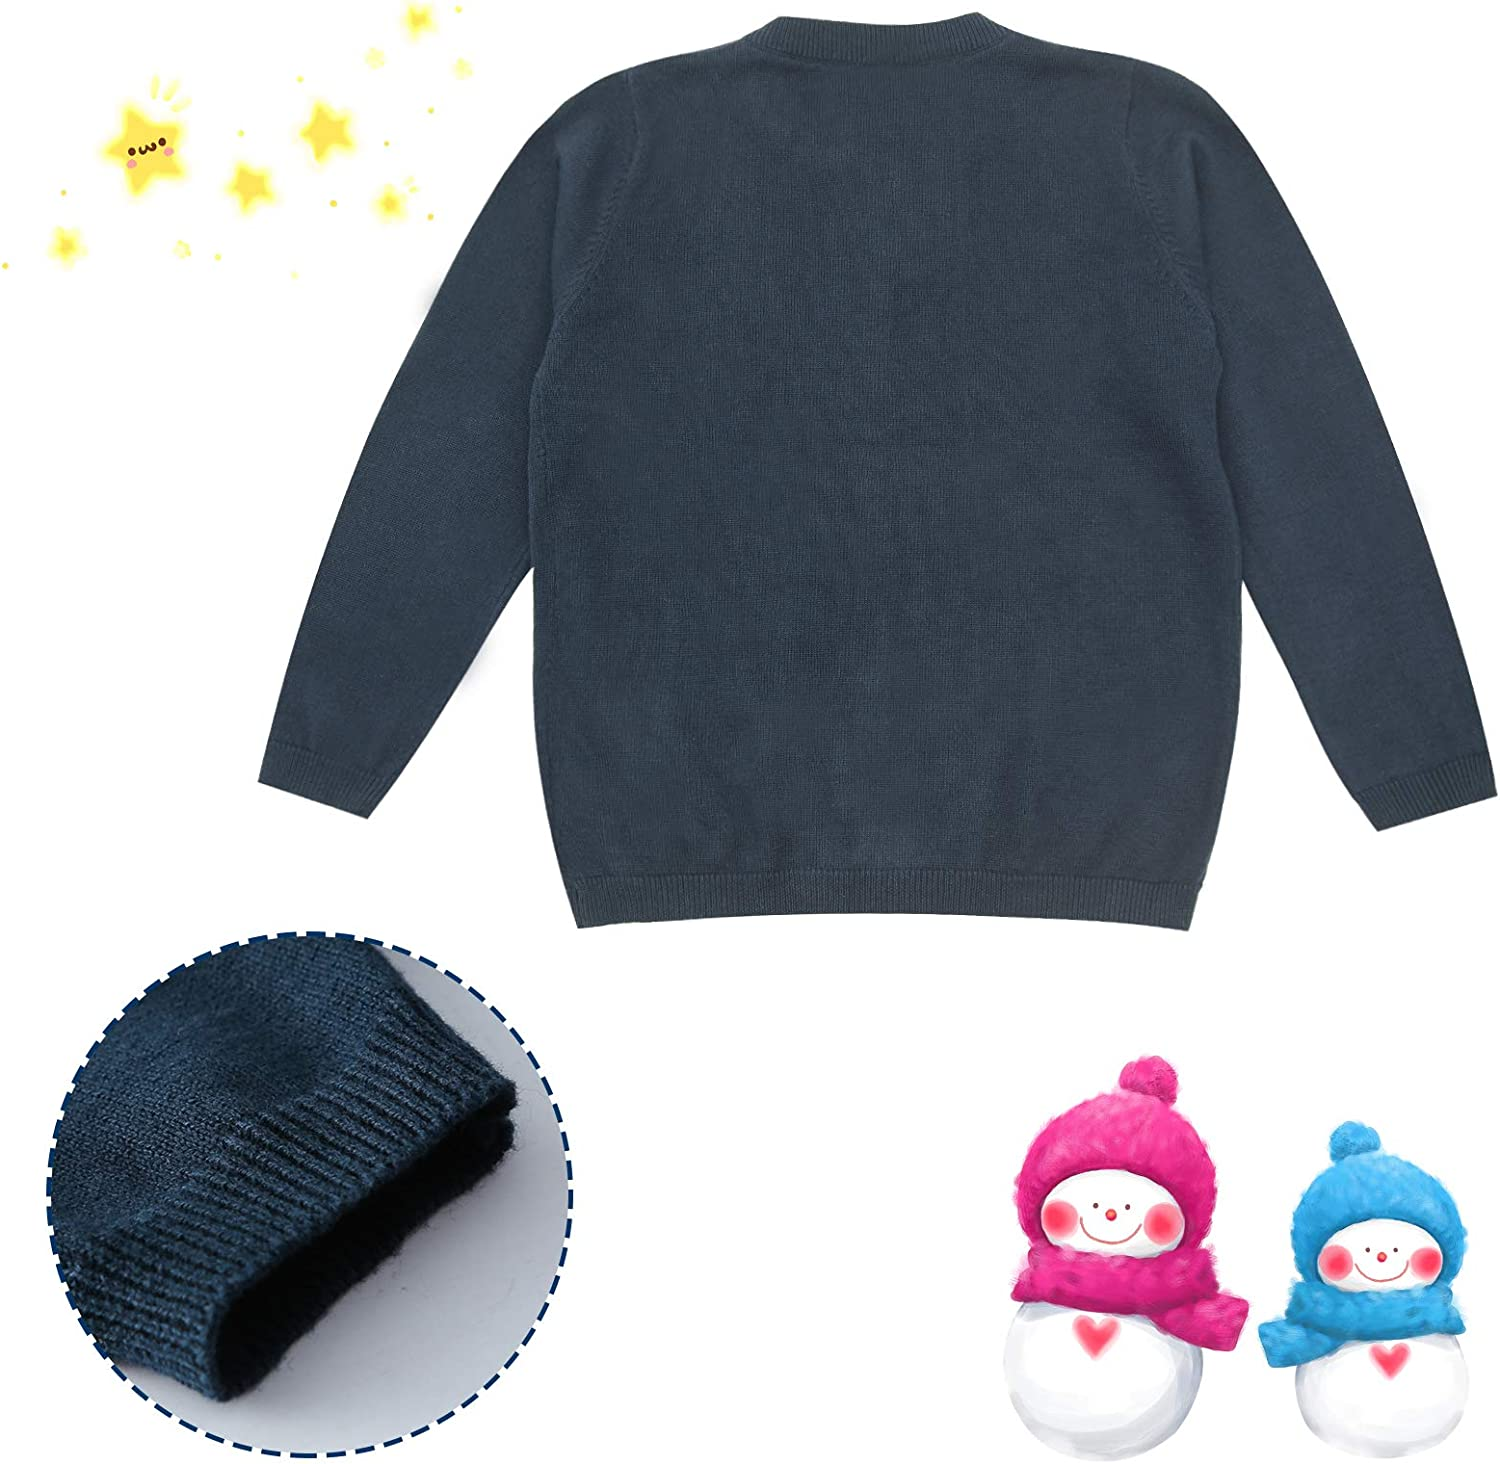 Toddler Boy Cotton Knit Cardigans with Long Sleeve Baby Girl Button Sweater Crew Neck Outwear